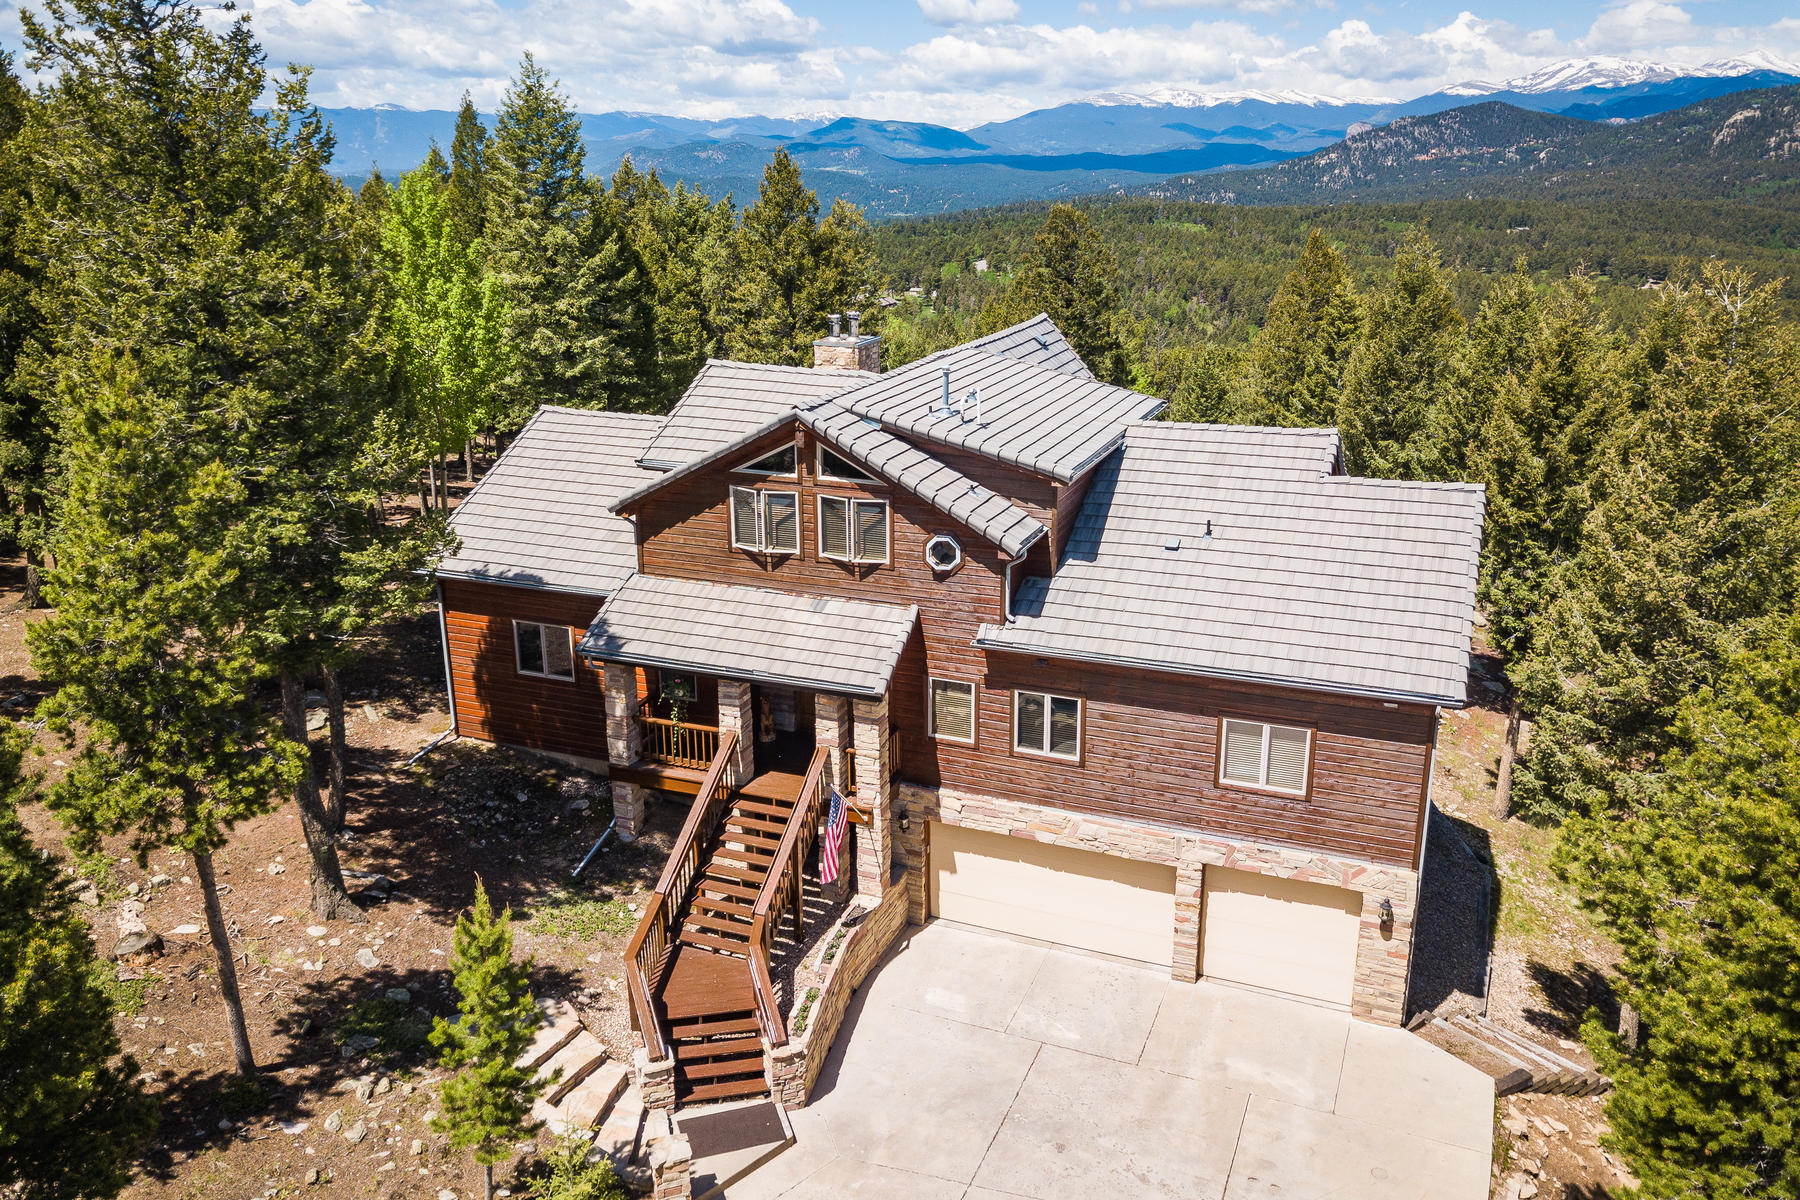 Single Family Homes for Sale at Inviting and well-crafted home defines mountain living 12401 Richmond Court Conifer, Colorado 80433 United States